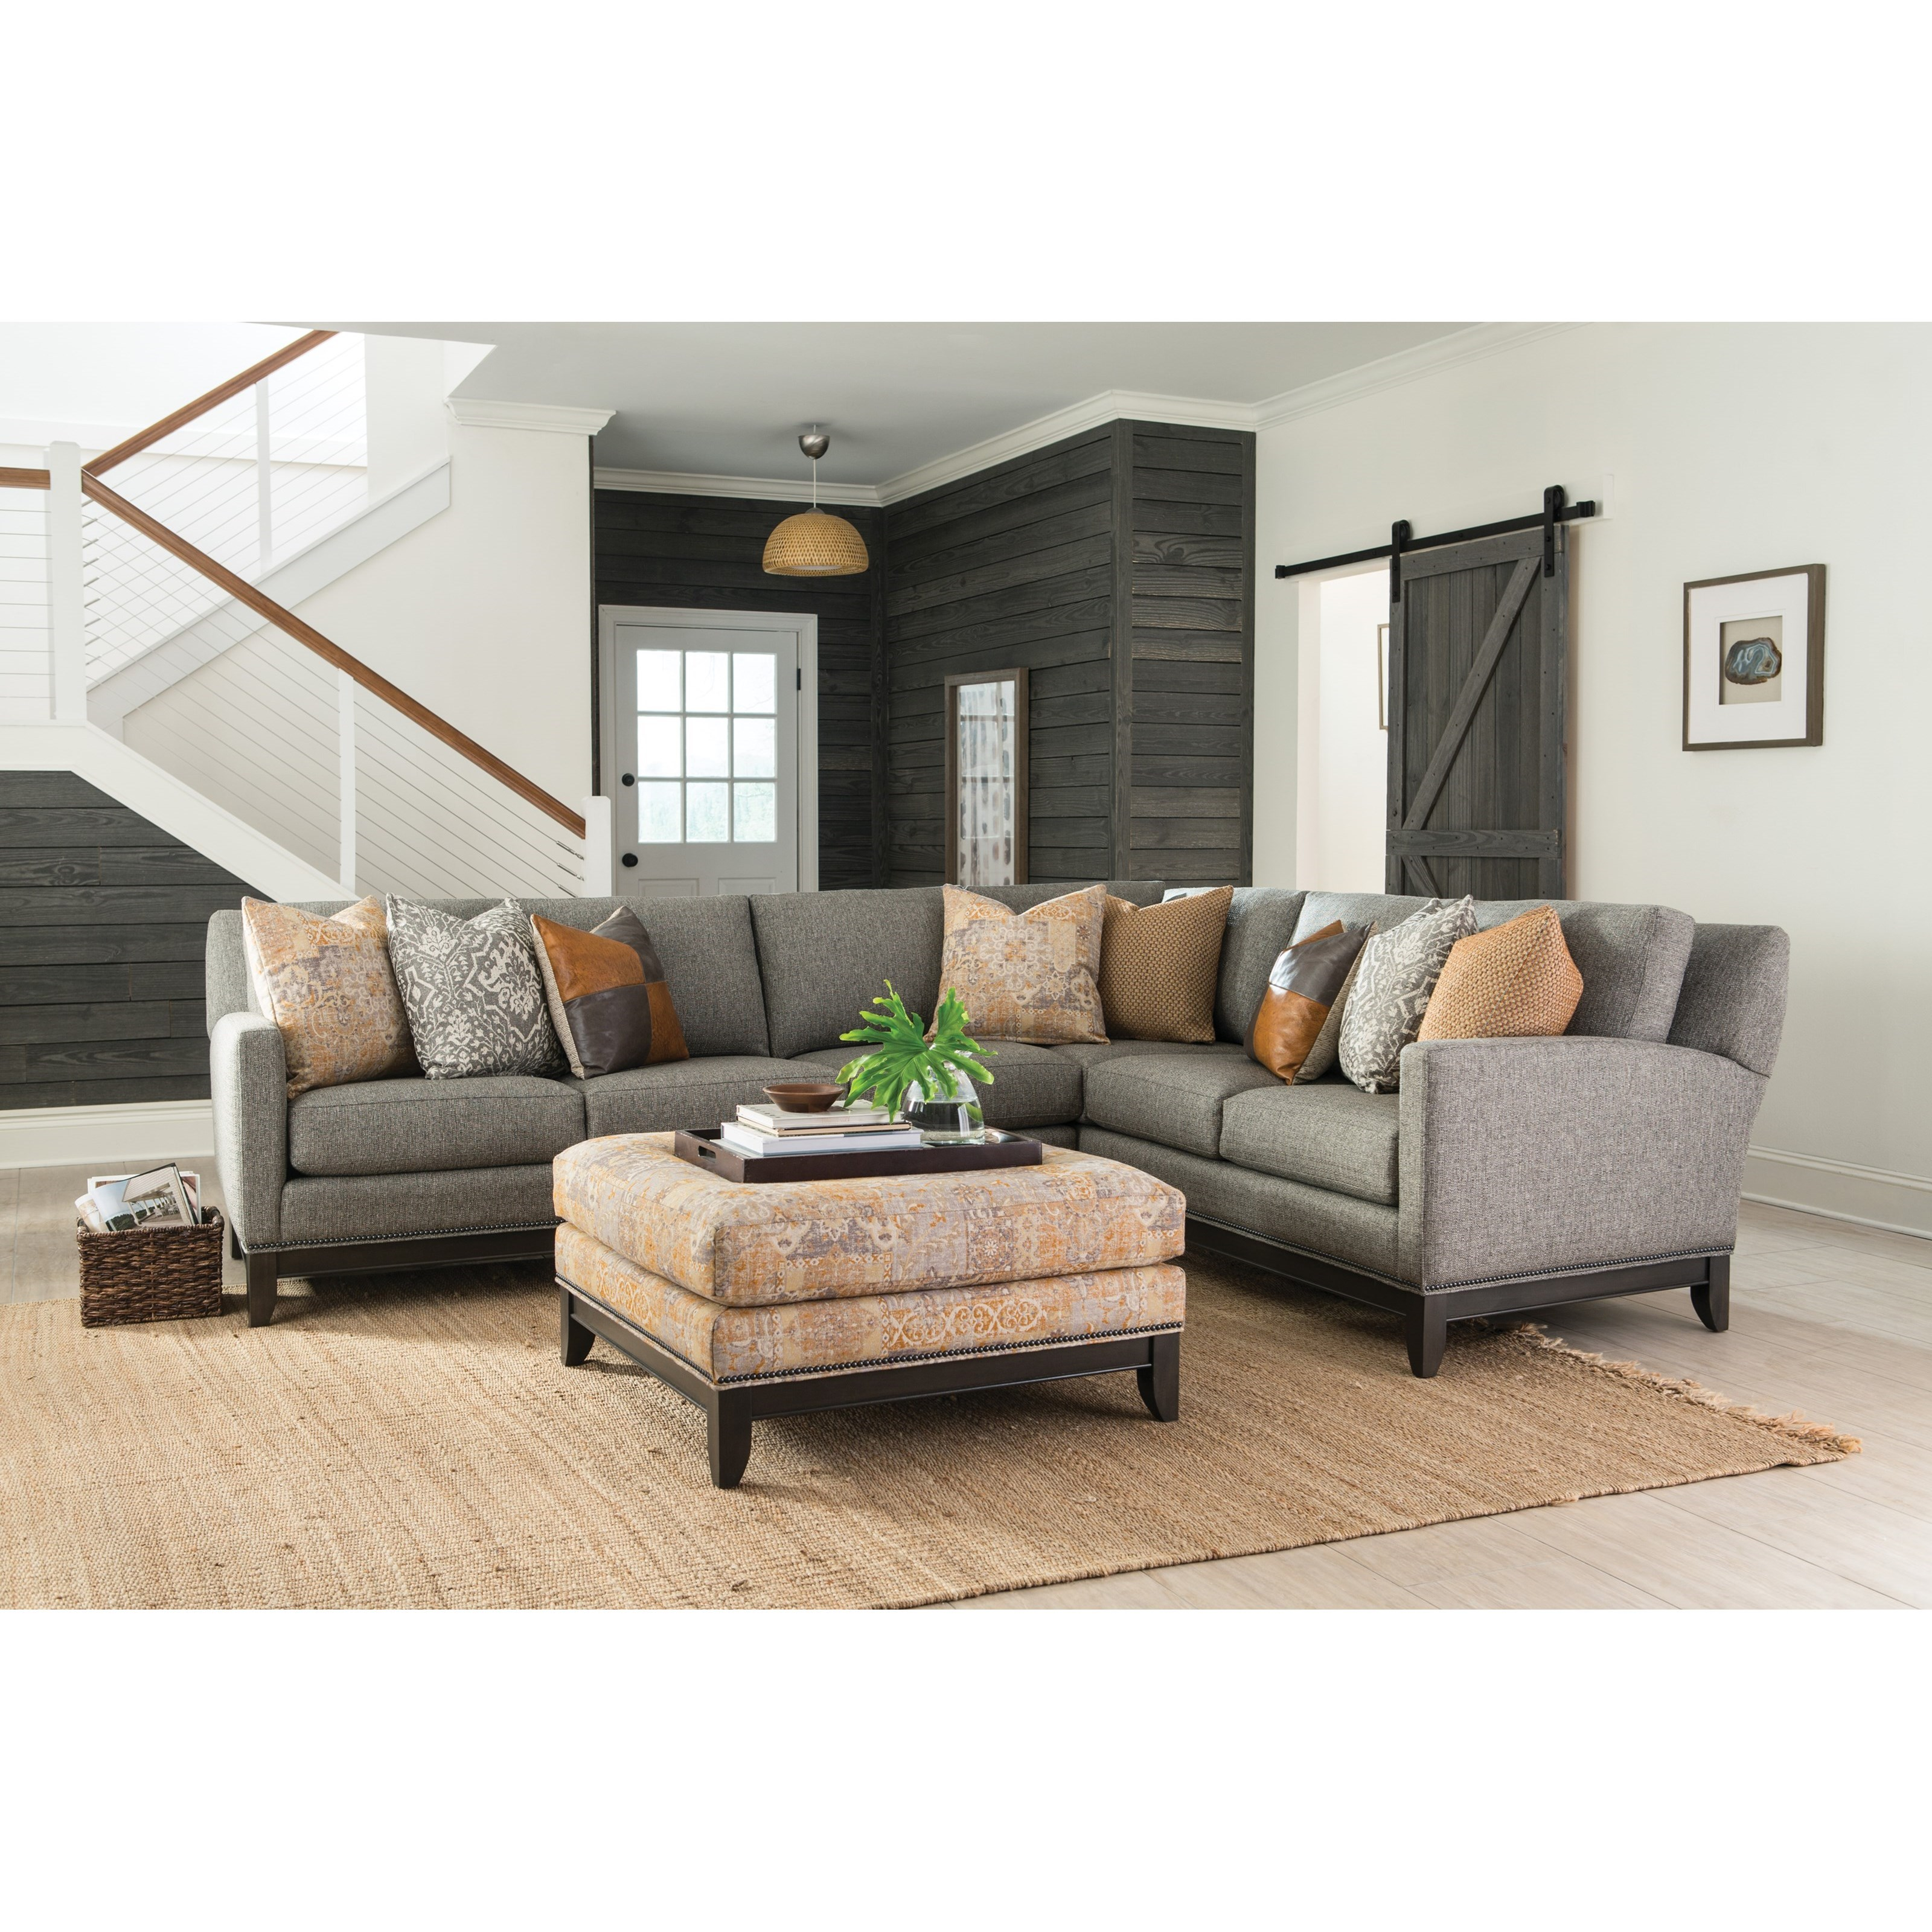 238 Stationary Living Room Group by Smith Brothers at Sprintz Furniture